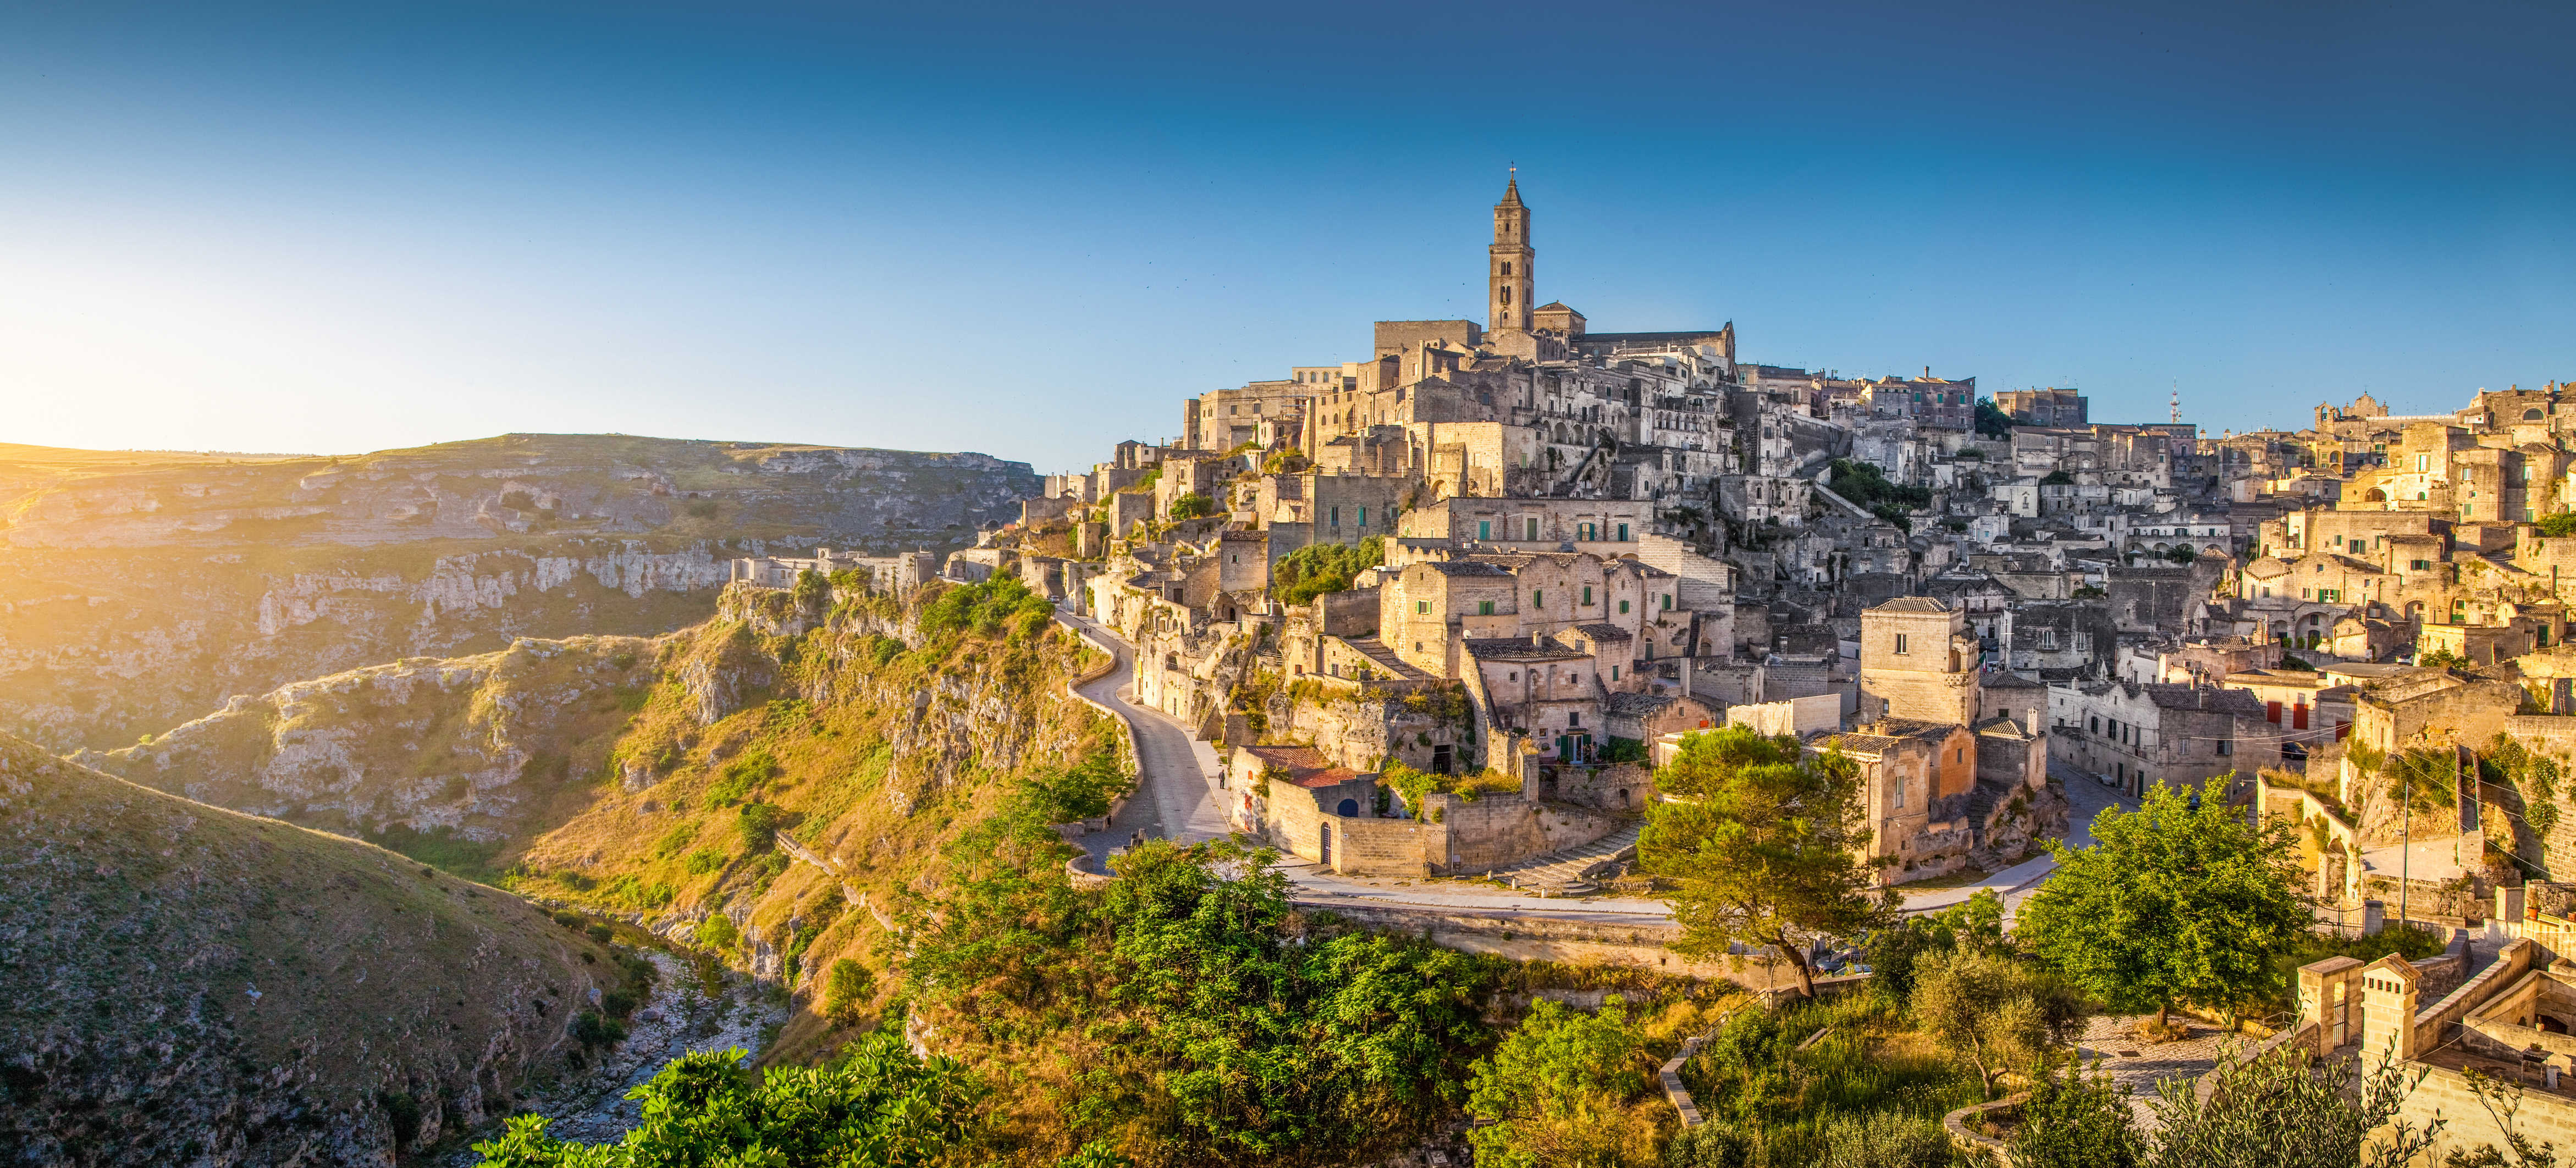 Panoramic view of the ancient town of Matera (Sassi di Matera), European Capital of Culture 2019, at sunrise, Basilicata, southern Italy